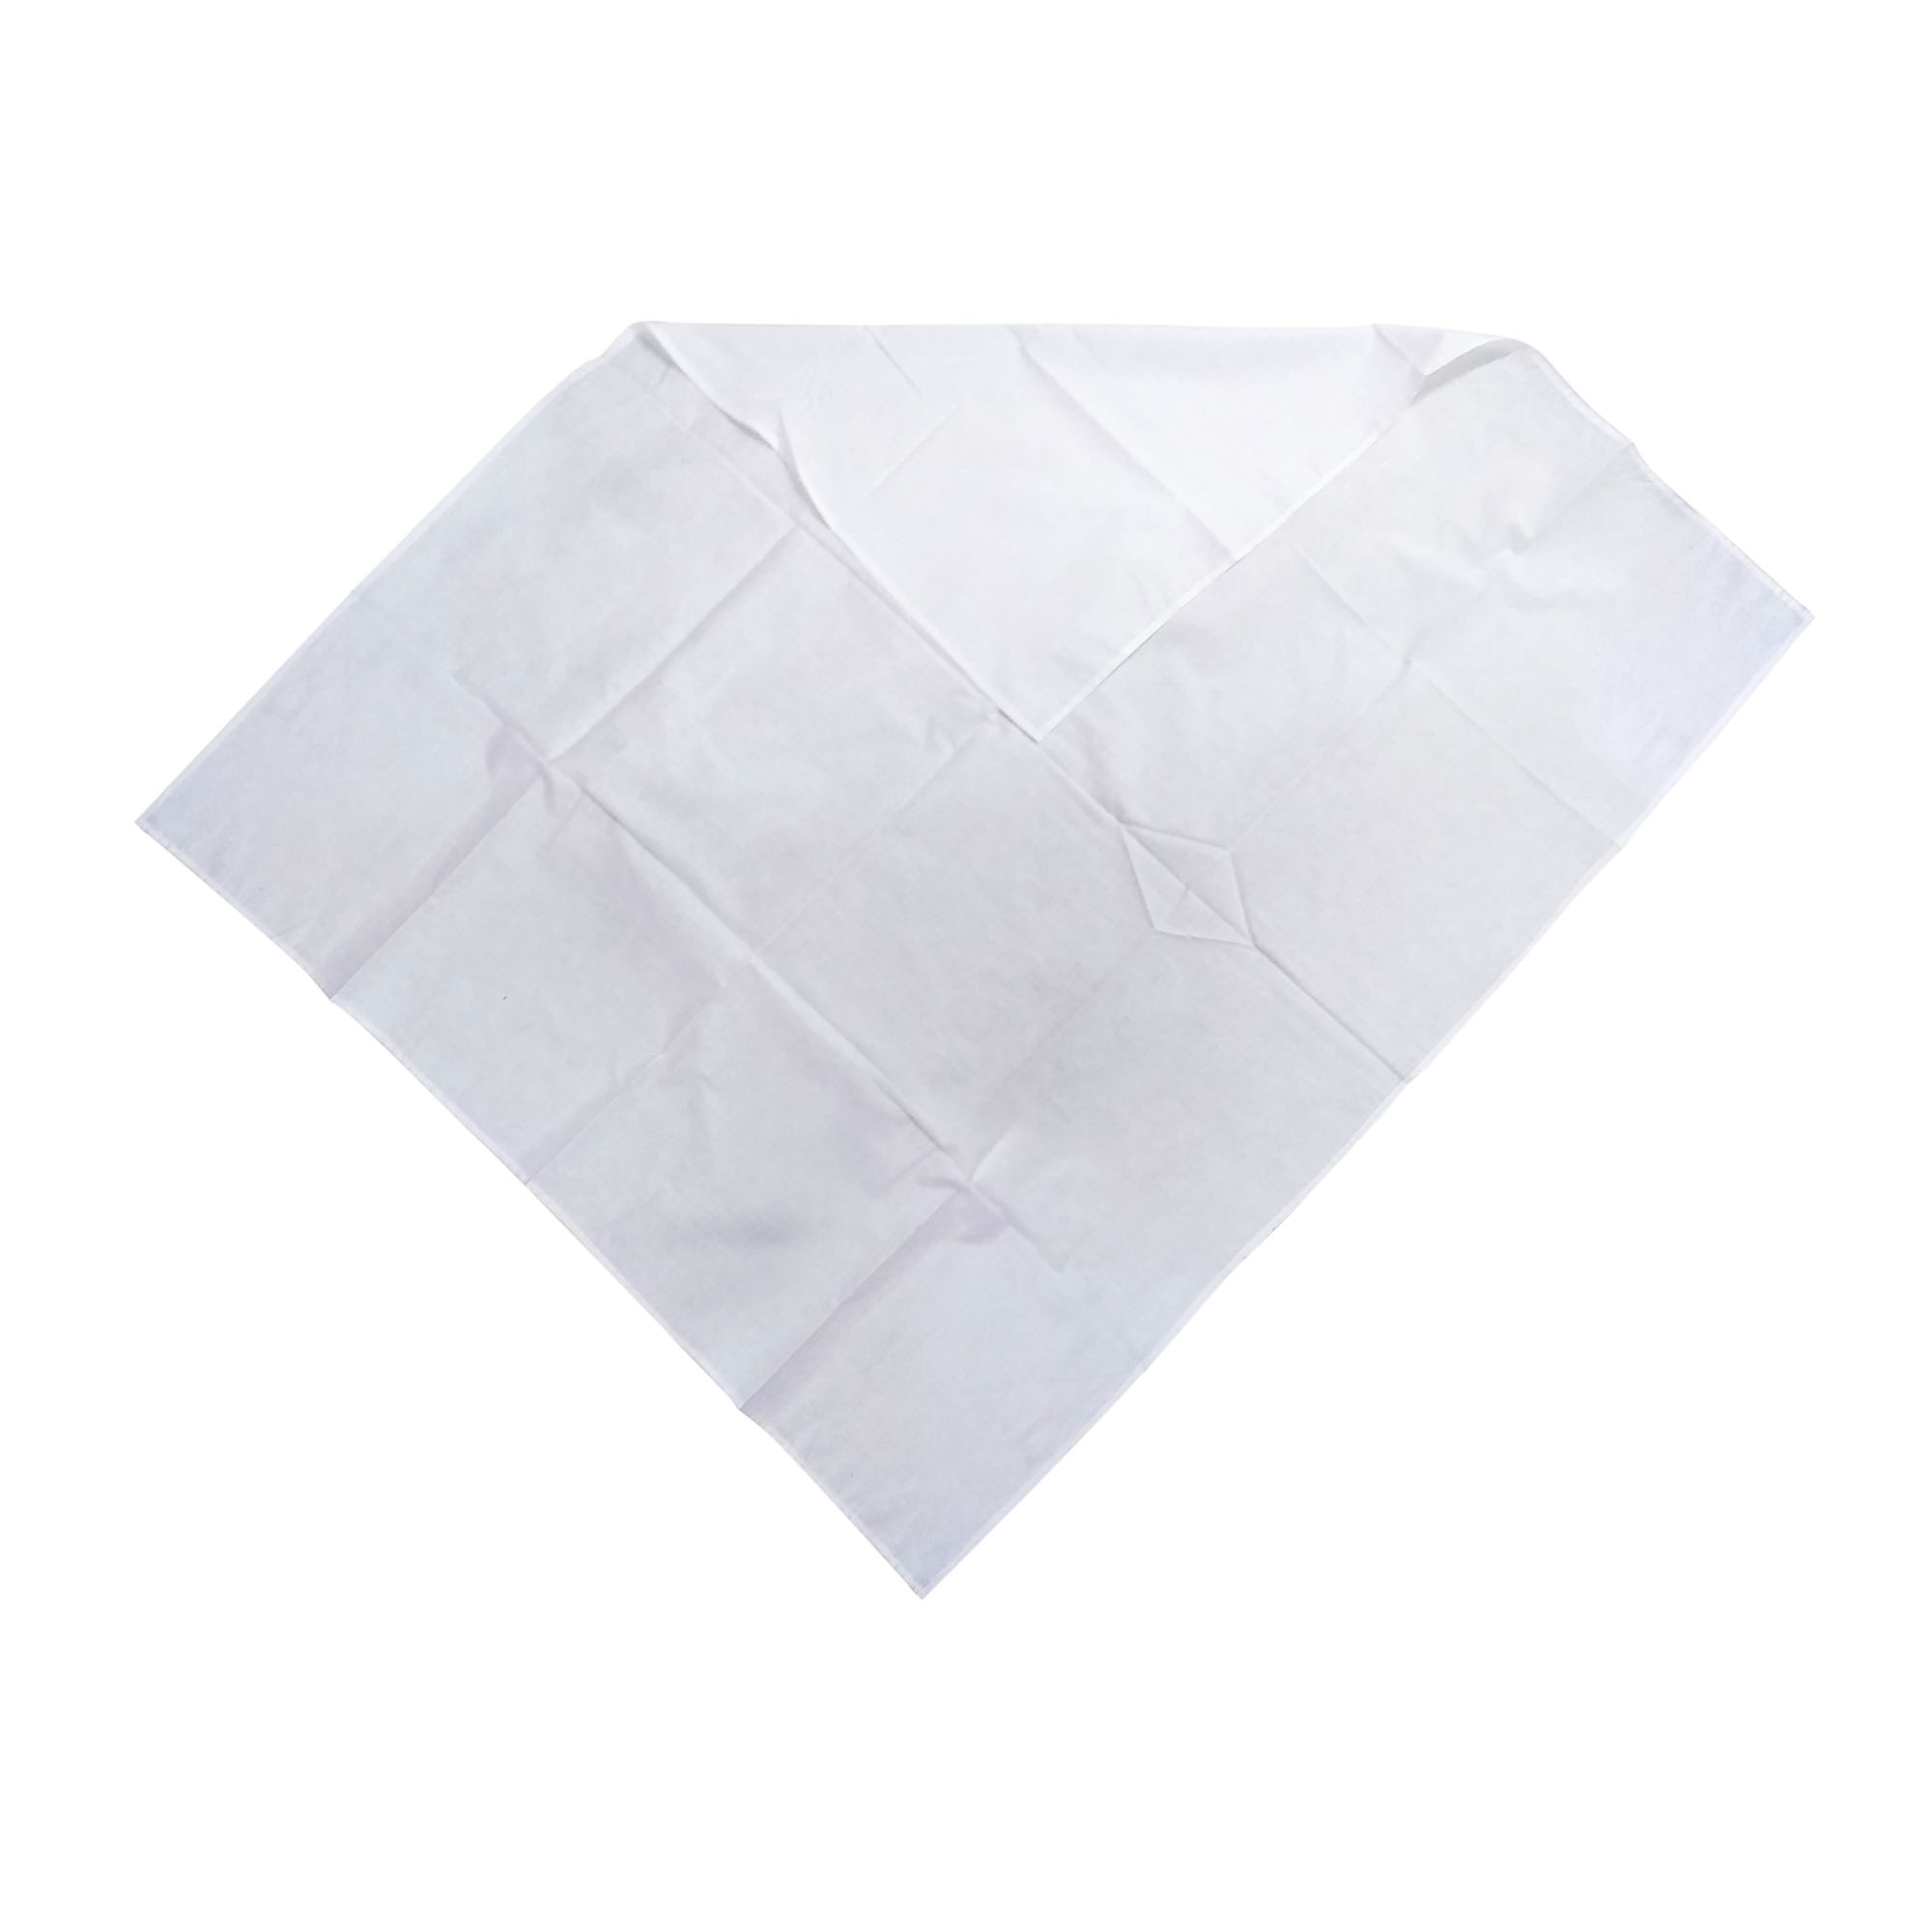 Wrapper for infant Cotton Swaddle Cum blanket Mix Print White by Love Baby - 1917 Combo P2